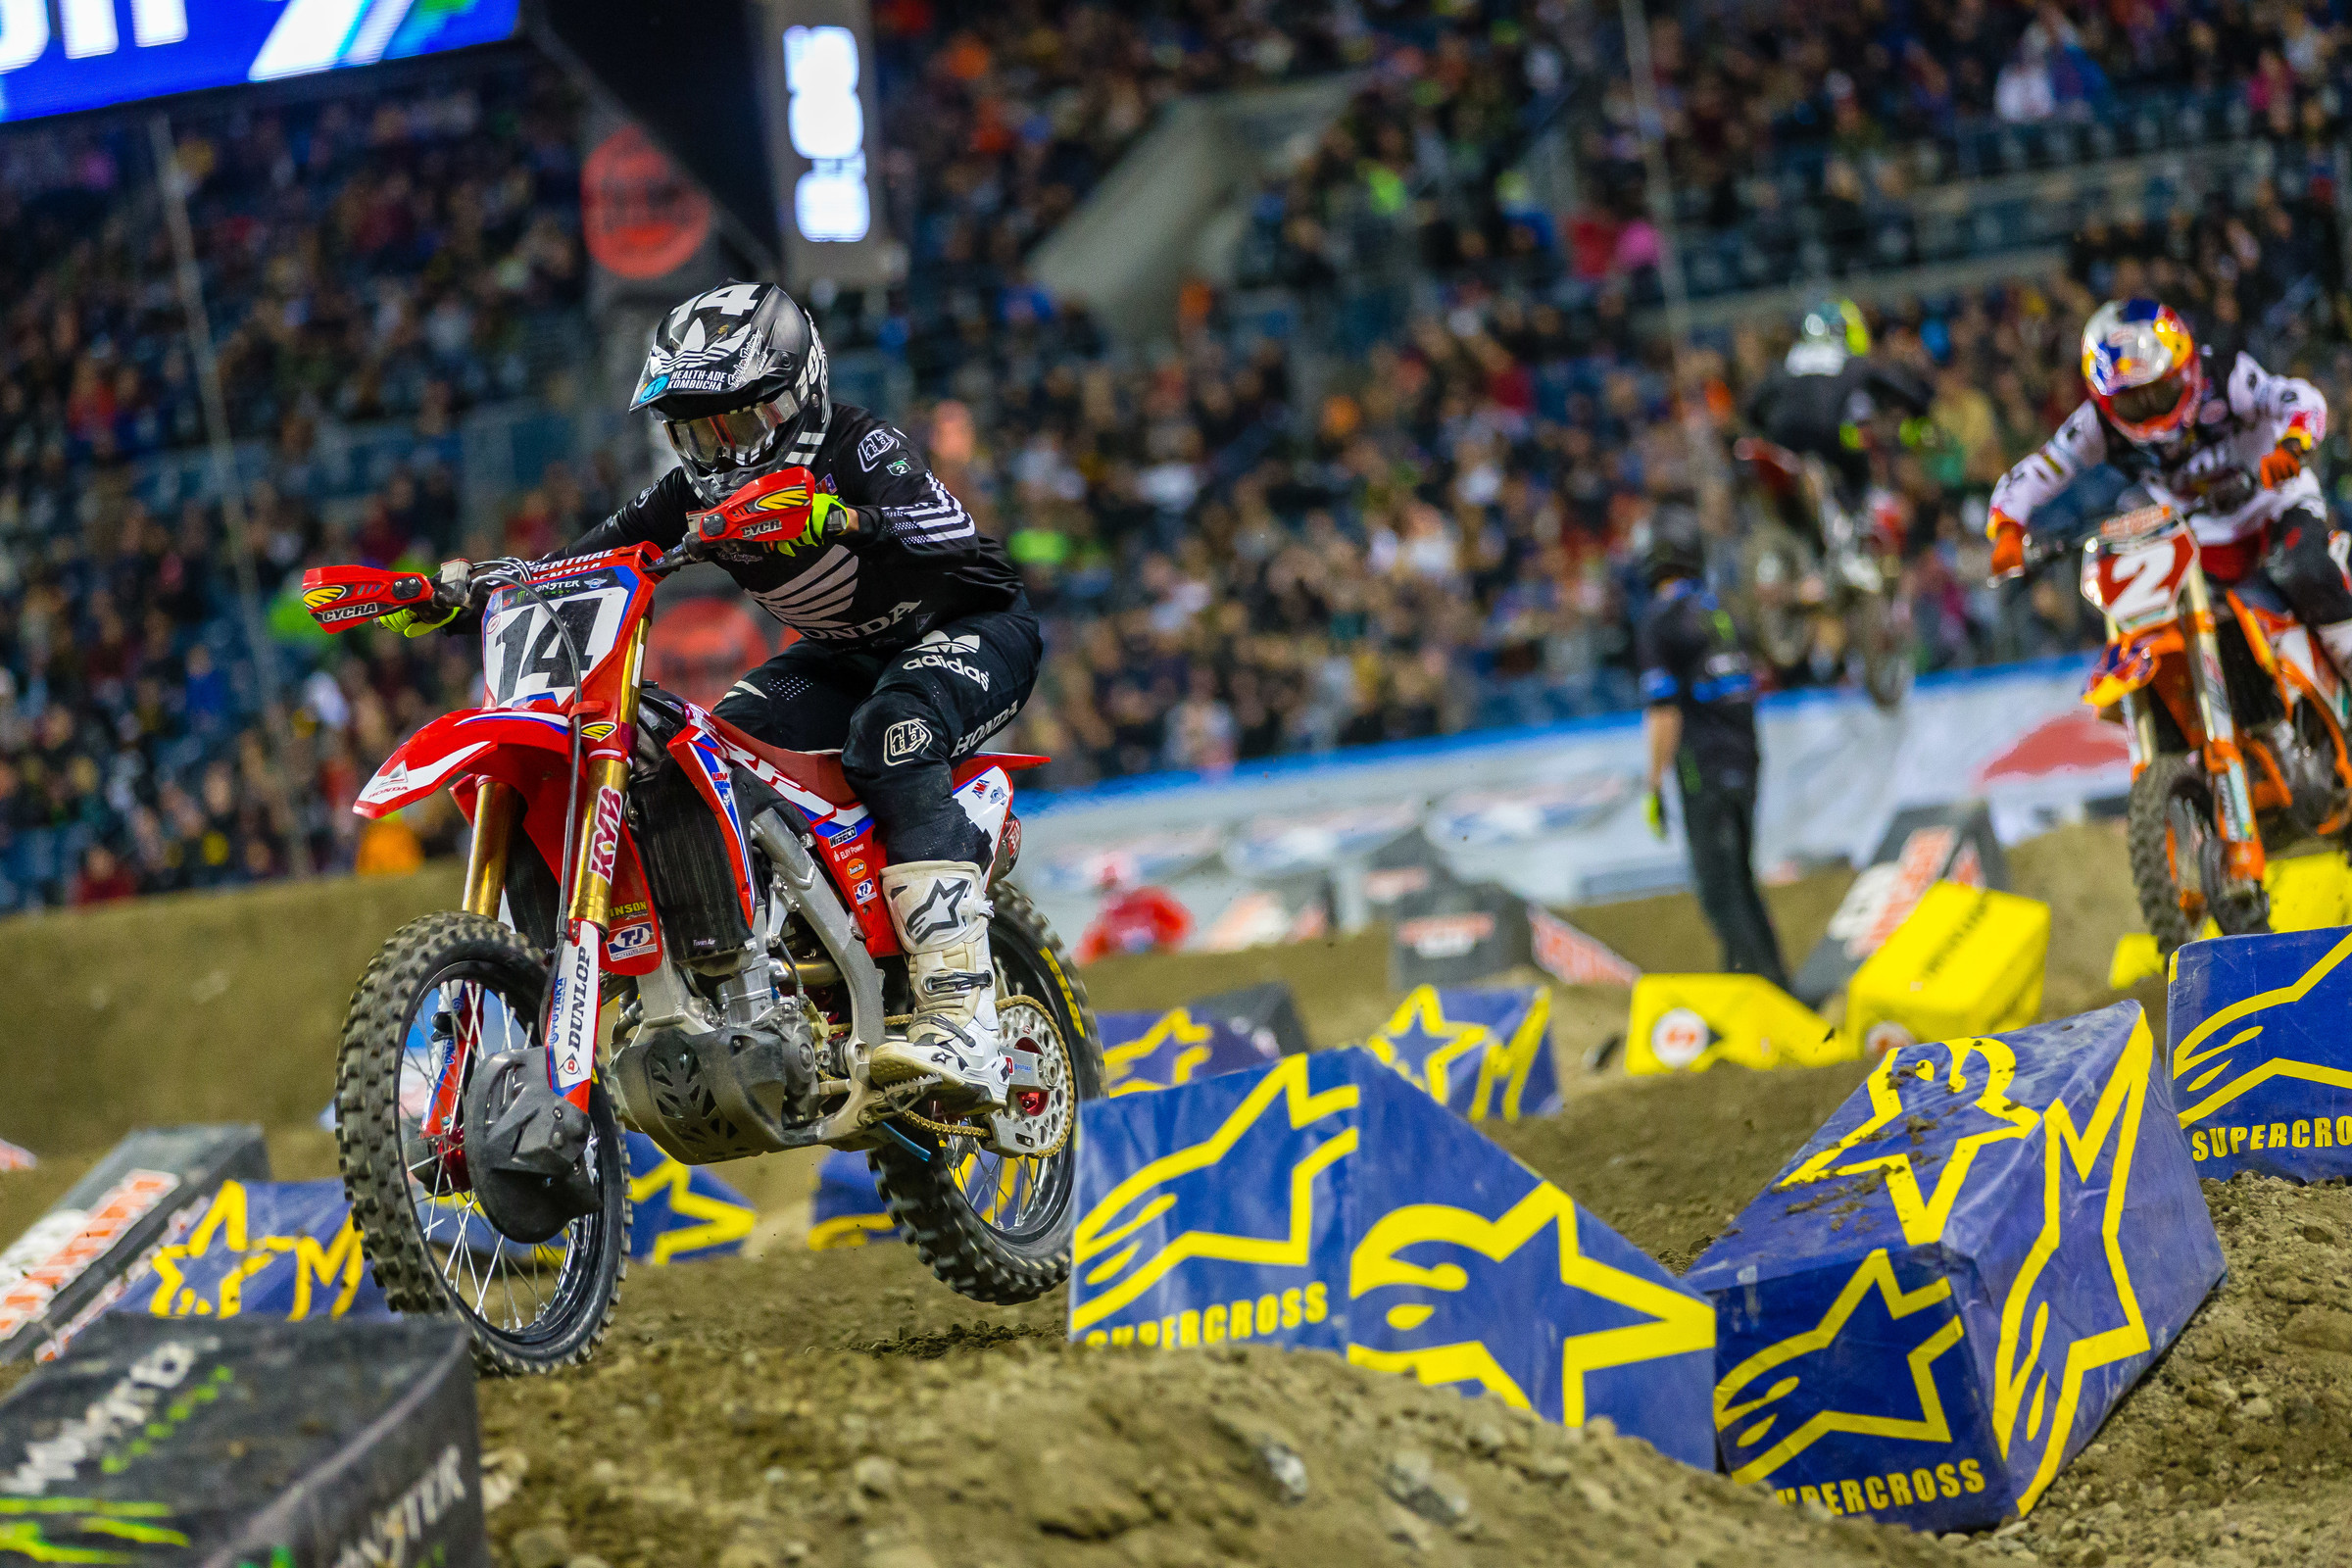 Cole Seely was one of the riders who was fast in the whoops early but struggled more with them as the night went on.